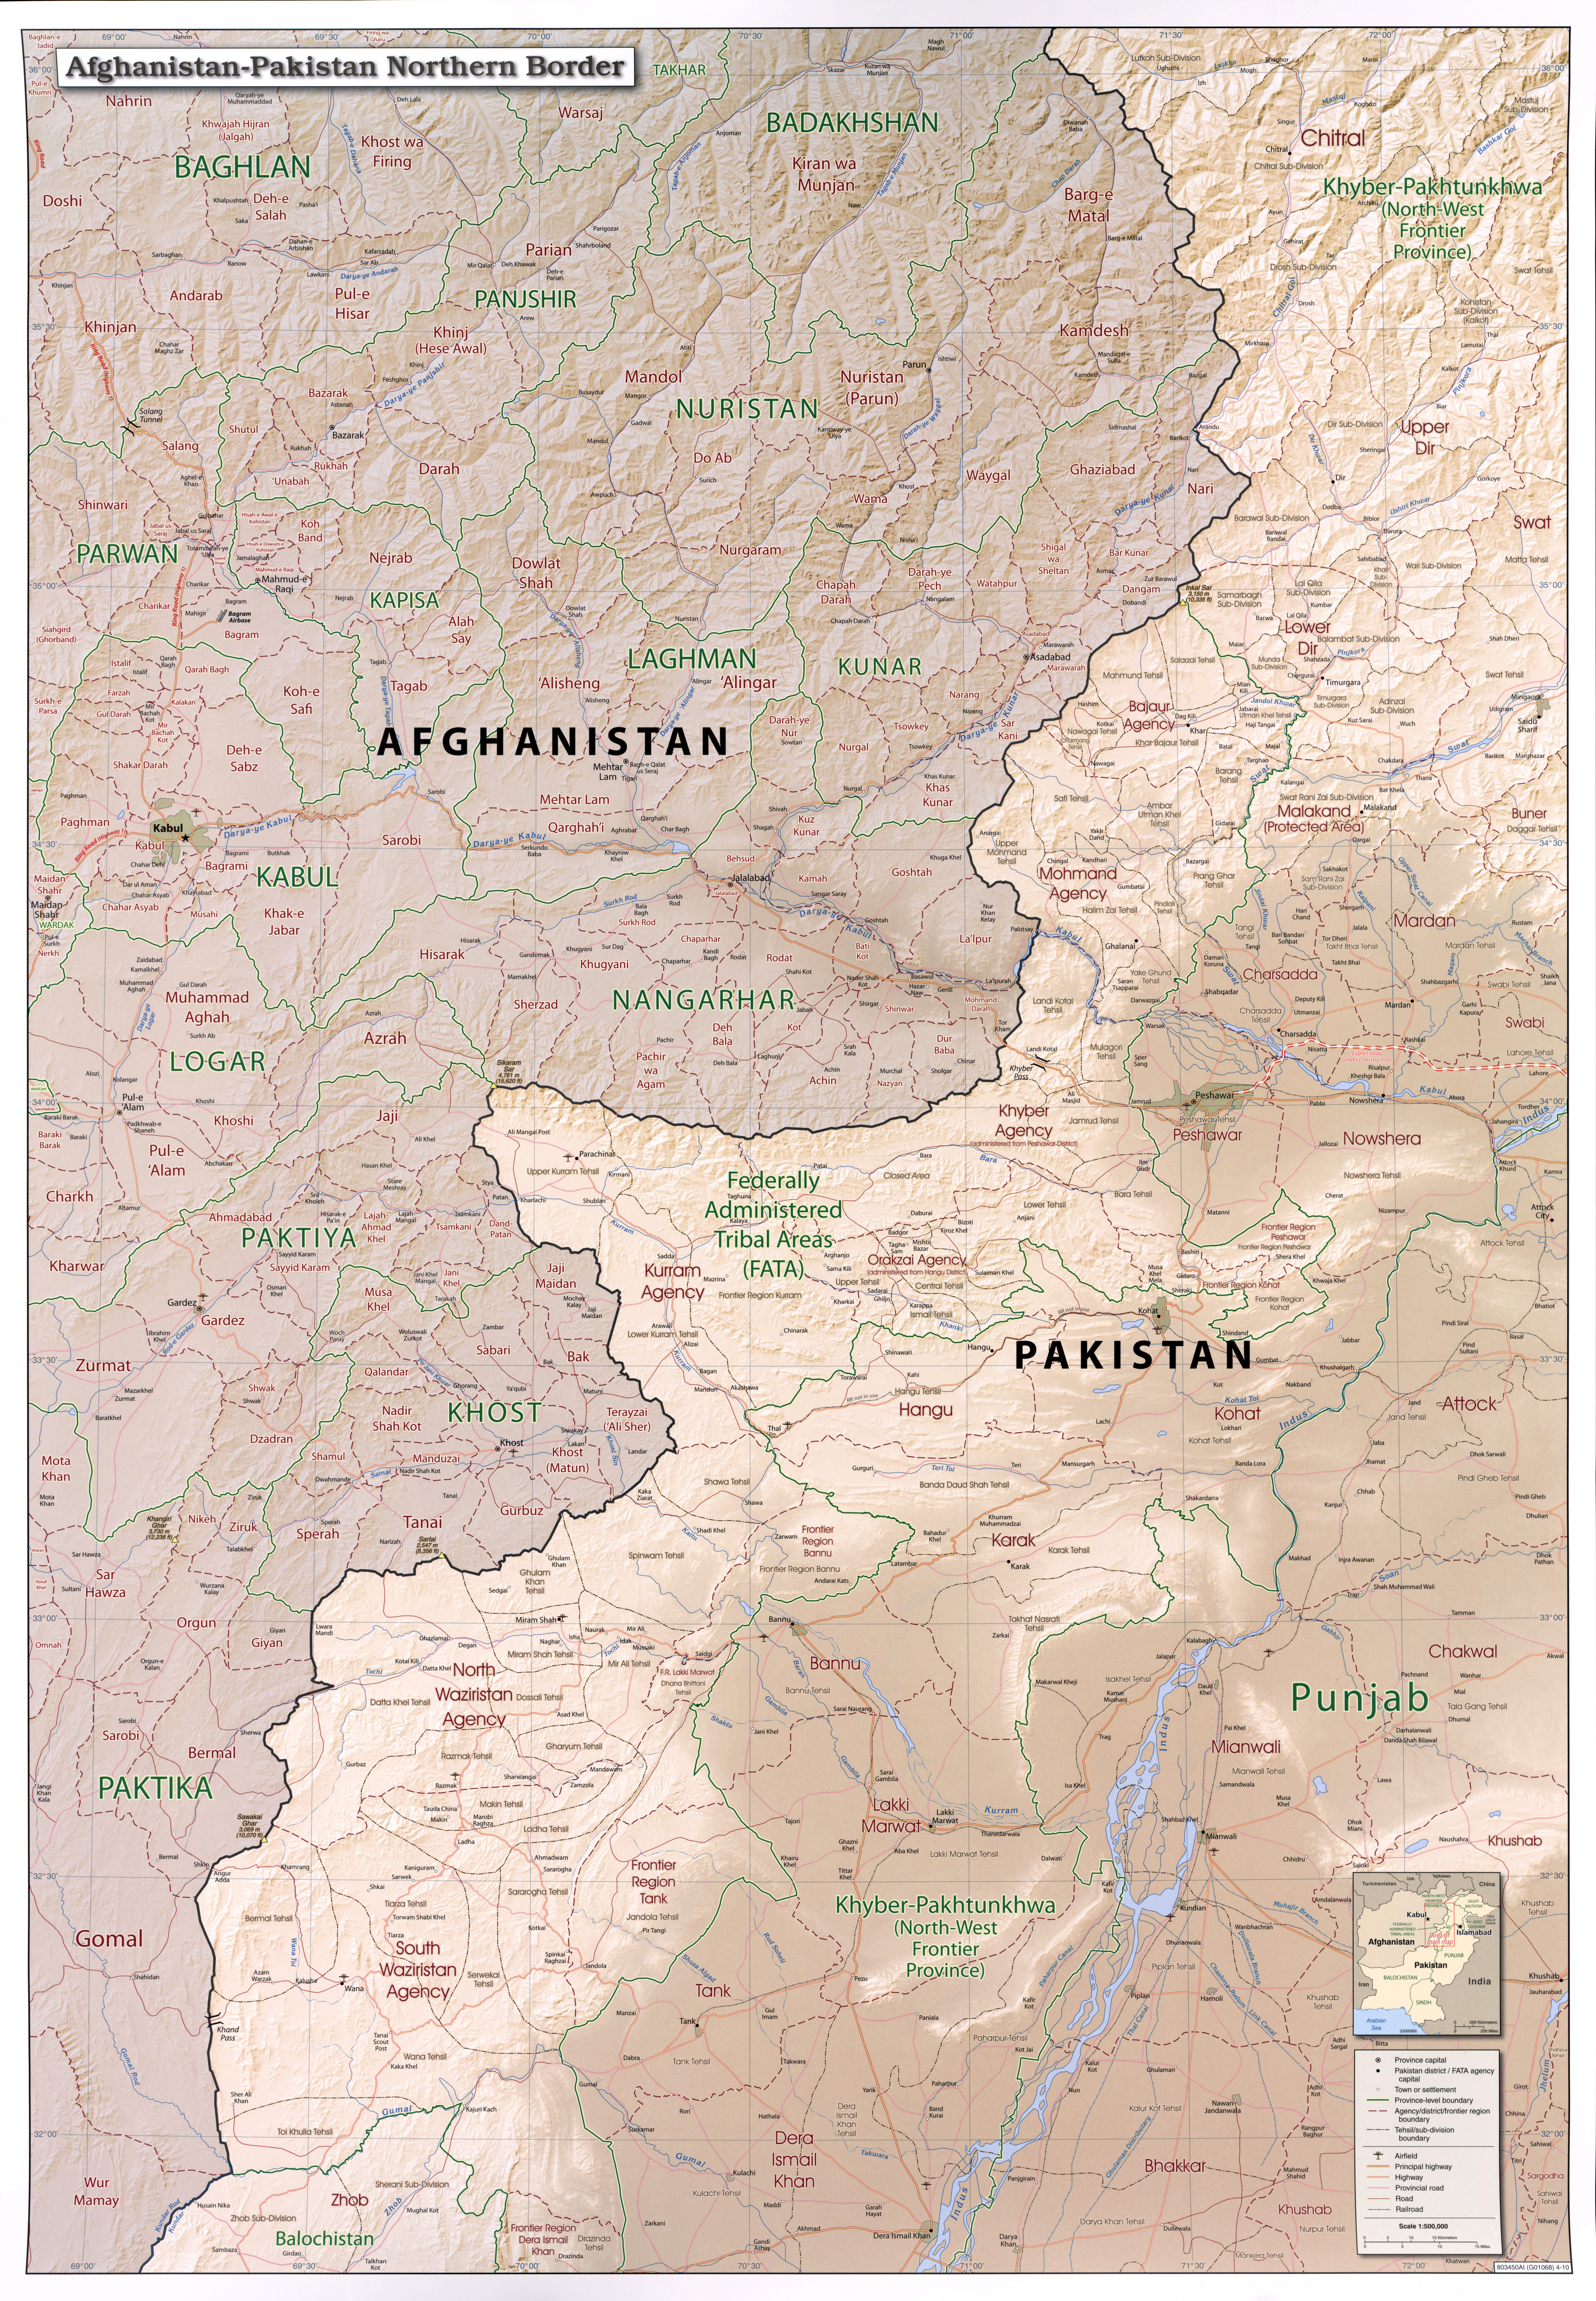 Large scale detailed Afghanistan Pakistan northern border map with